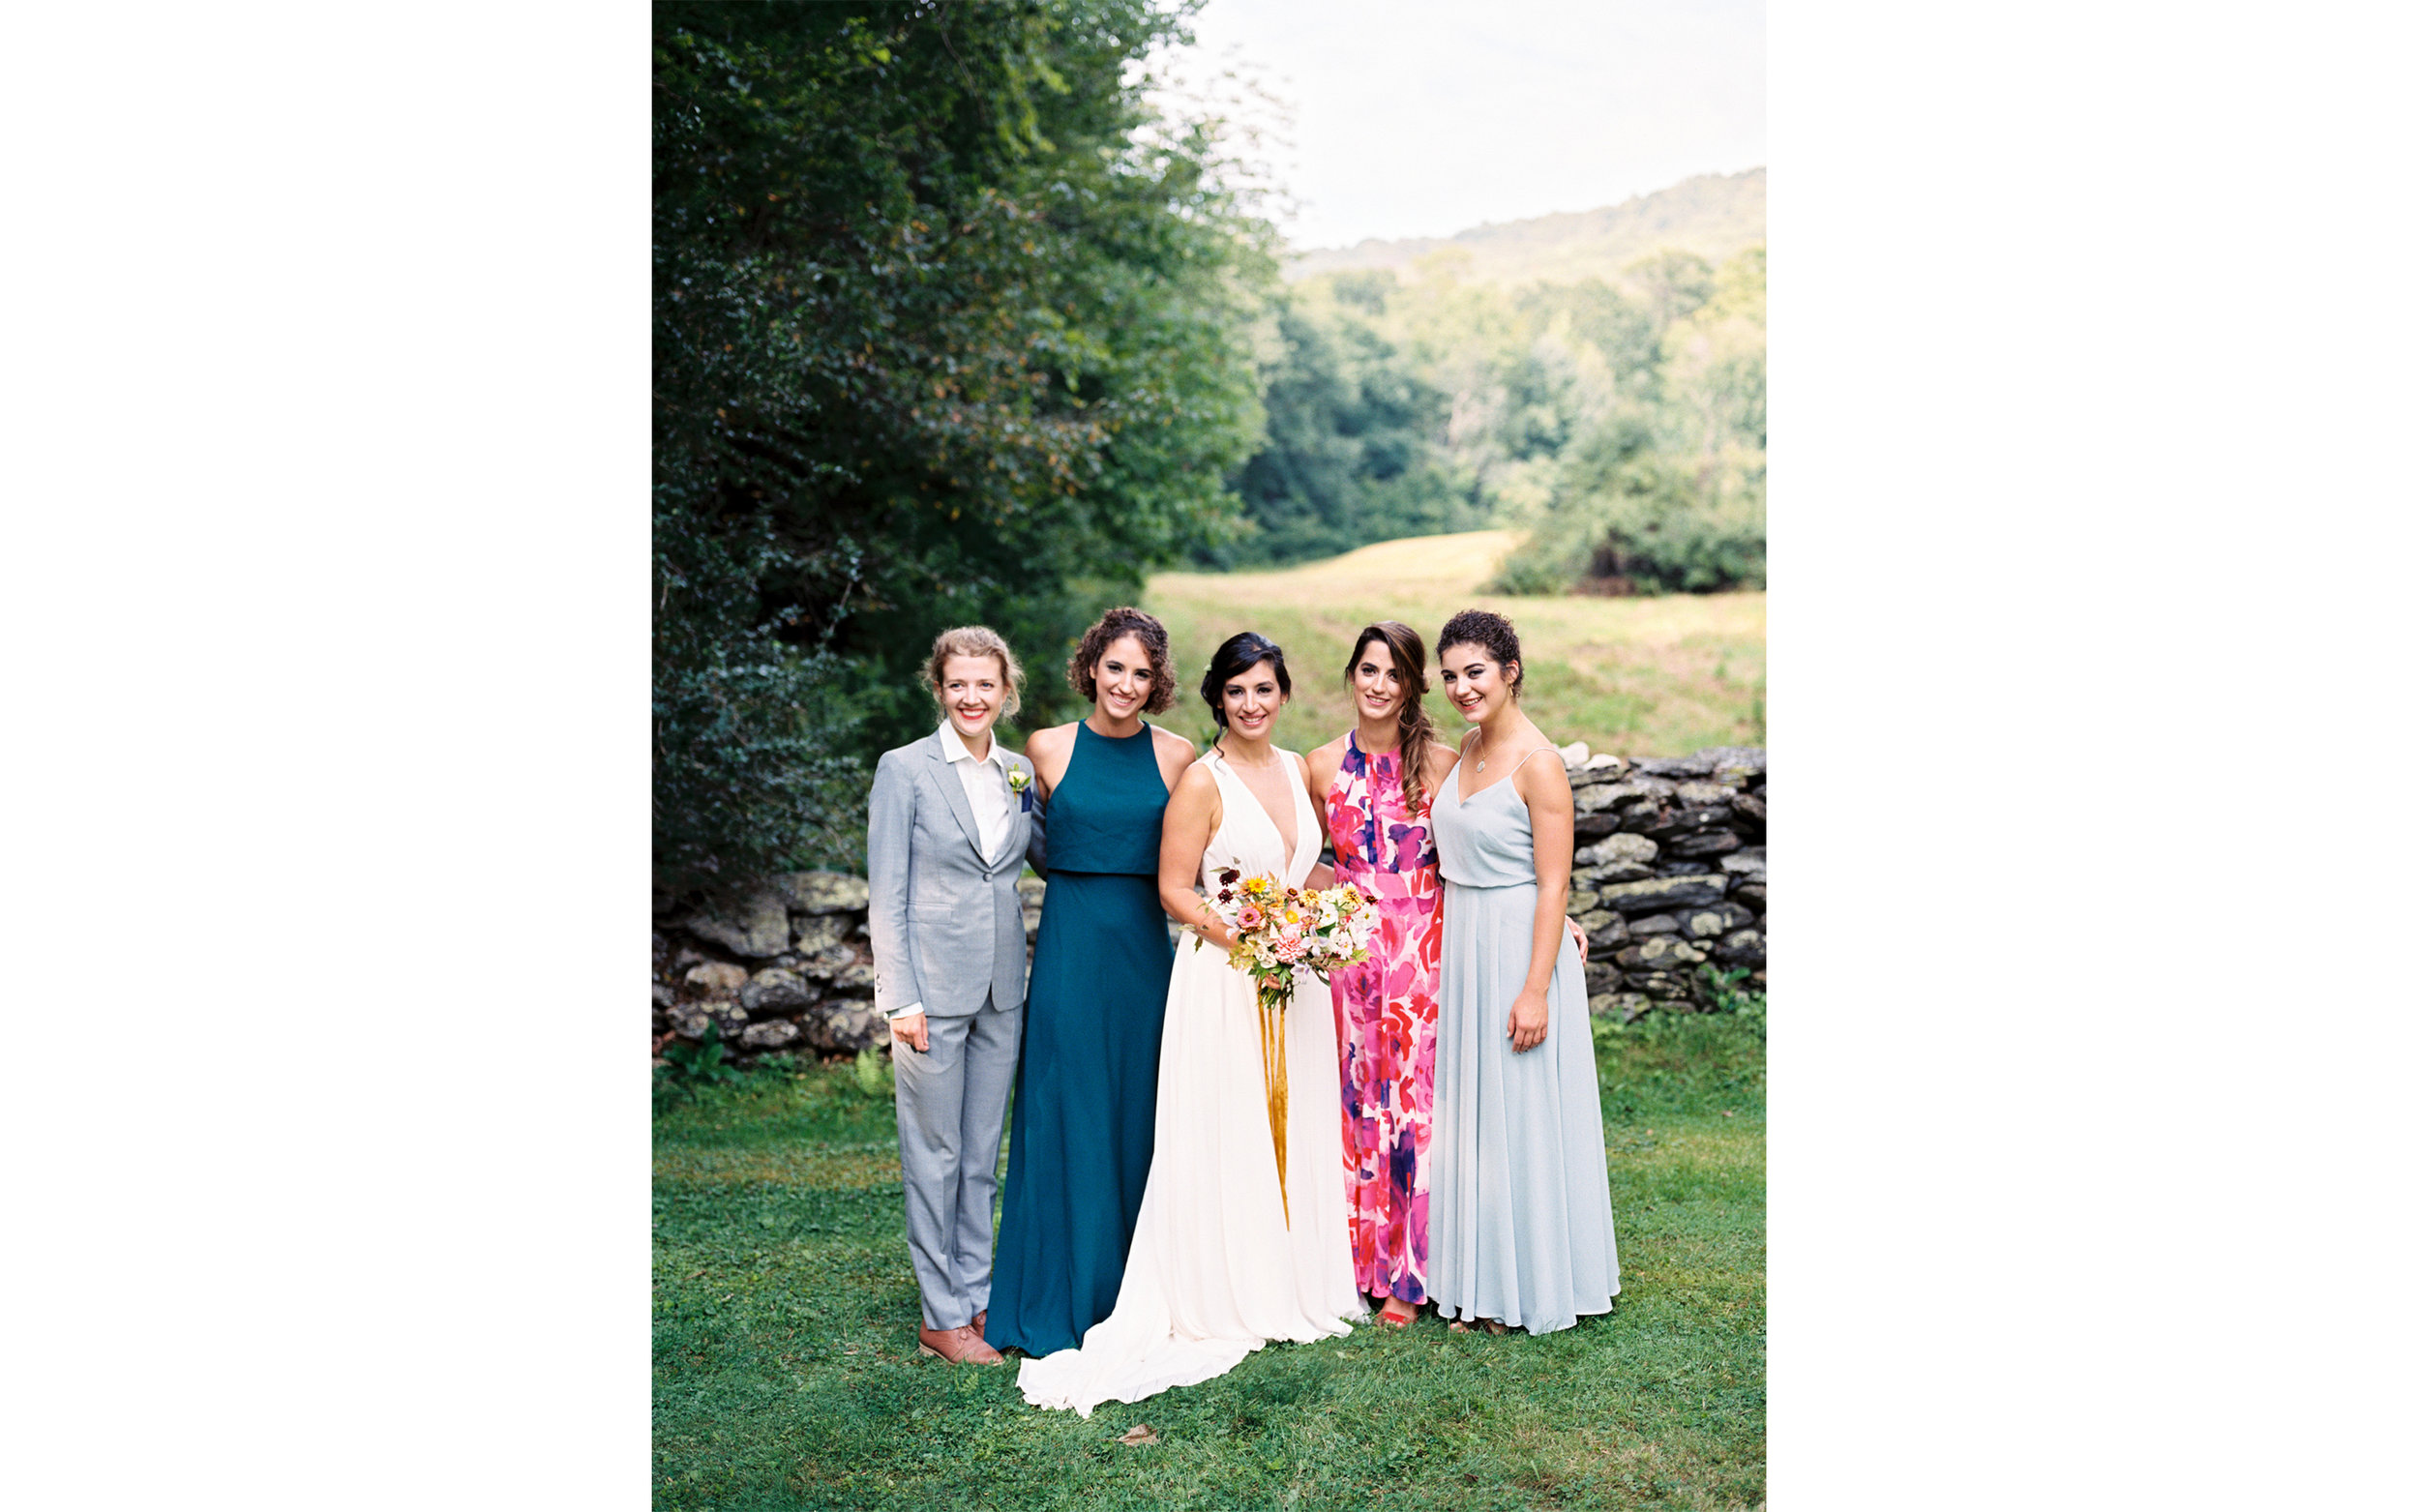 Berkshires Wedding Fine Art Wedding Photographer_Meg Haley Photographs_015.jpg